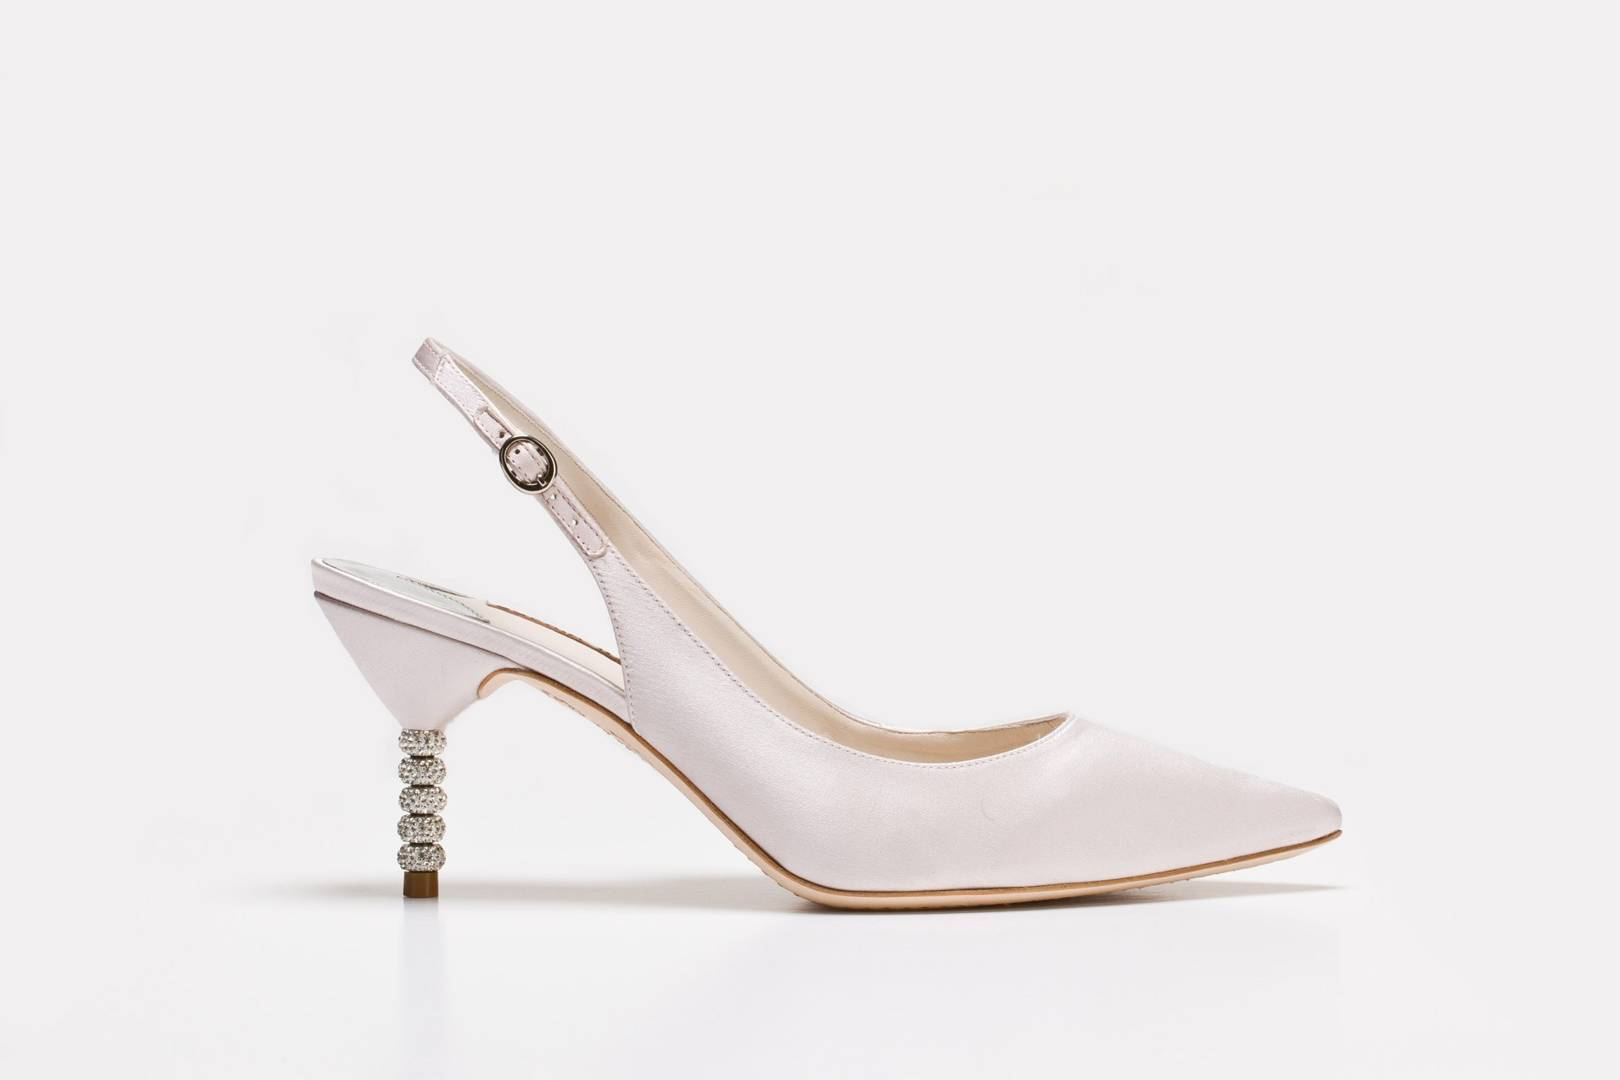 b4a2cd29c5d6d4 Sophia Webster launches bridal collection of shoes